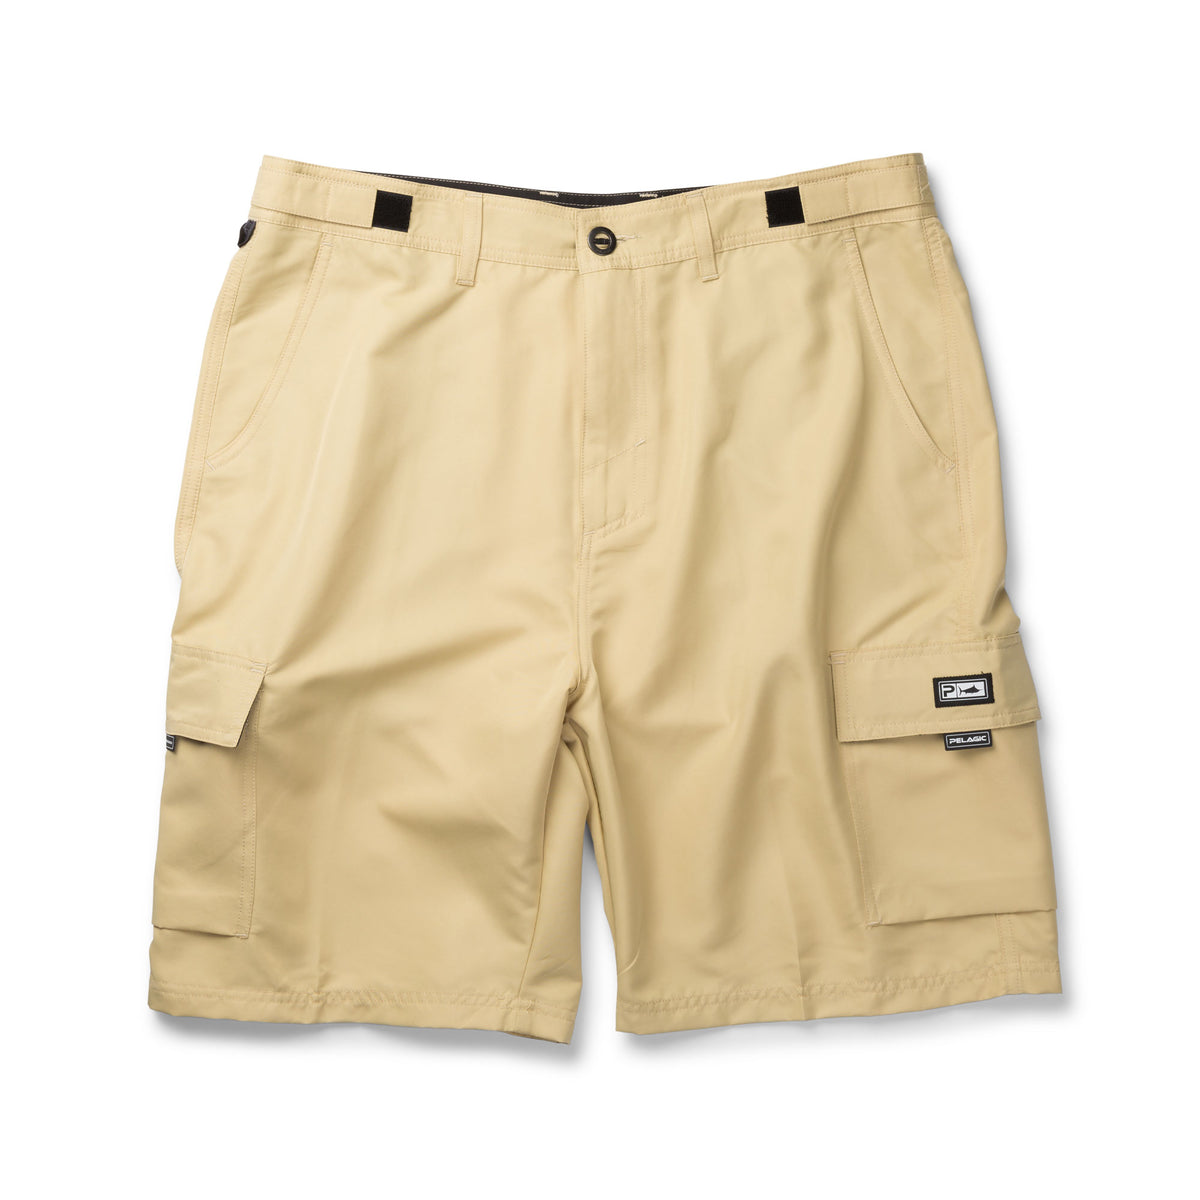 Socorro Hybrid Fishing Shorts Big Image - 1